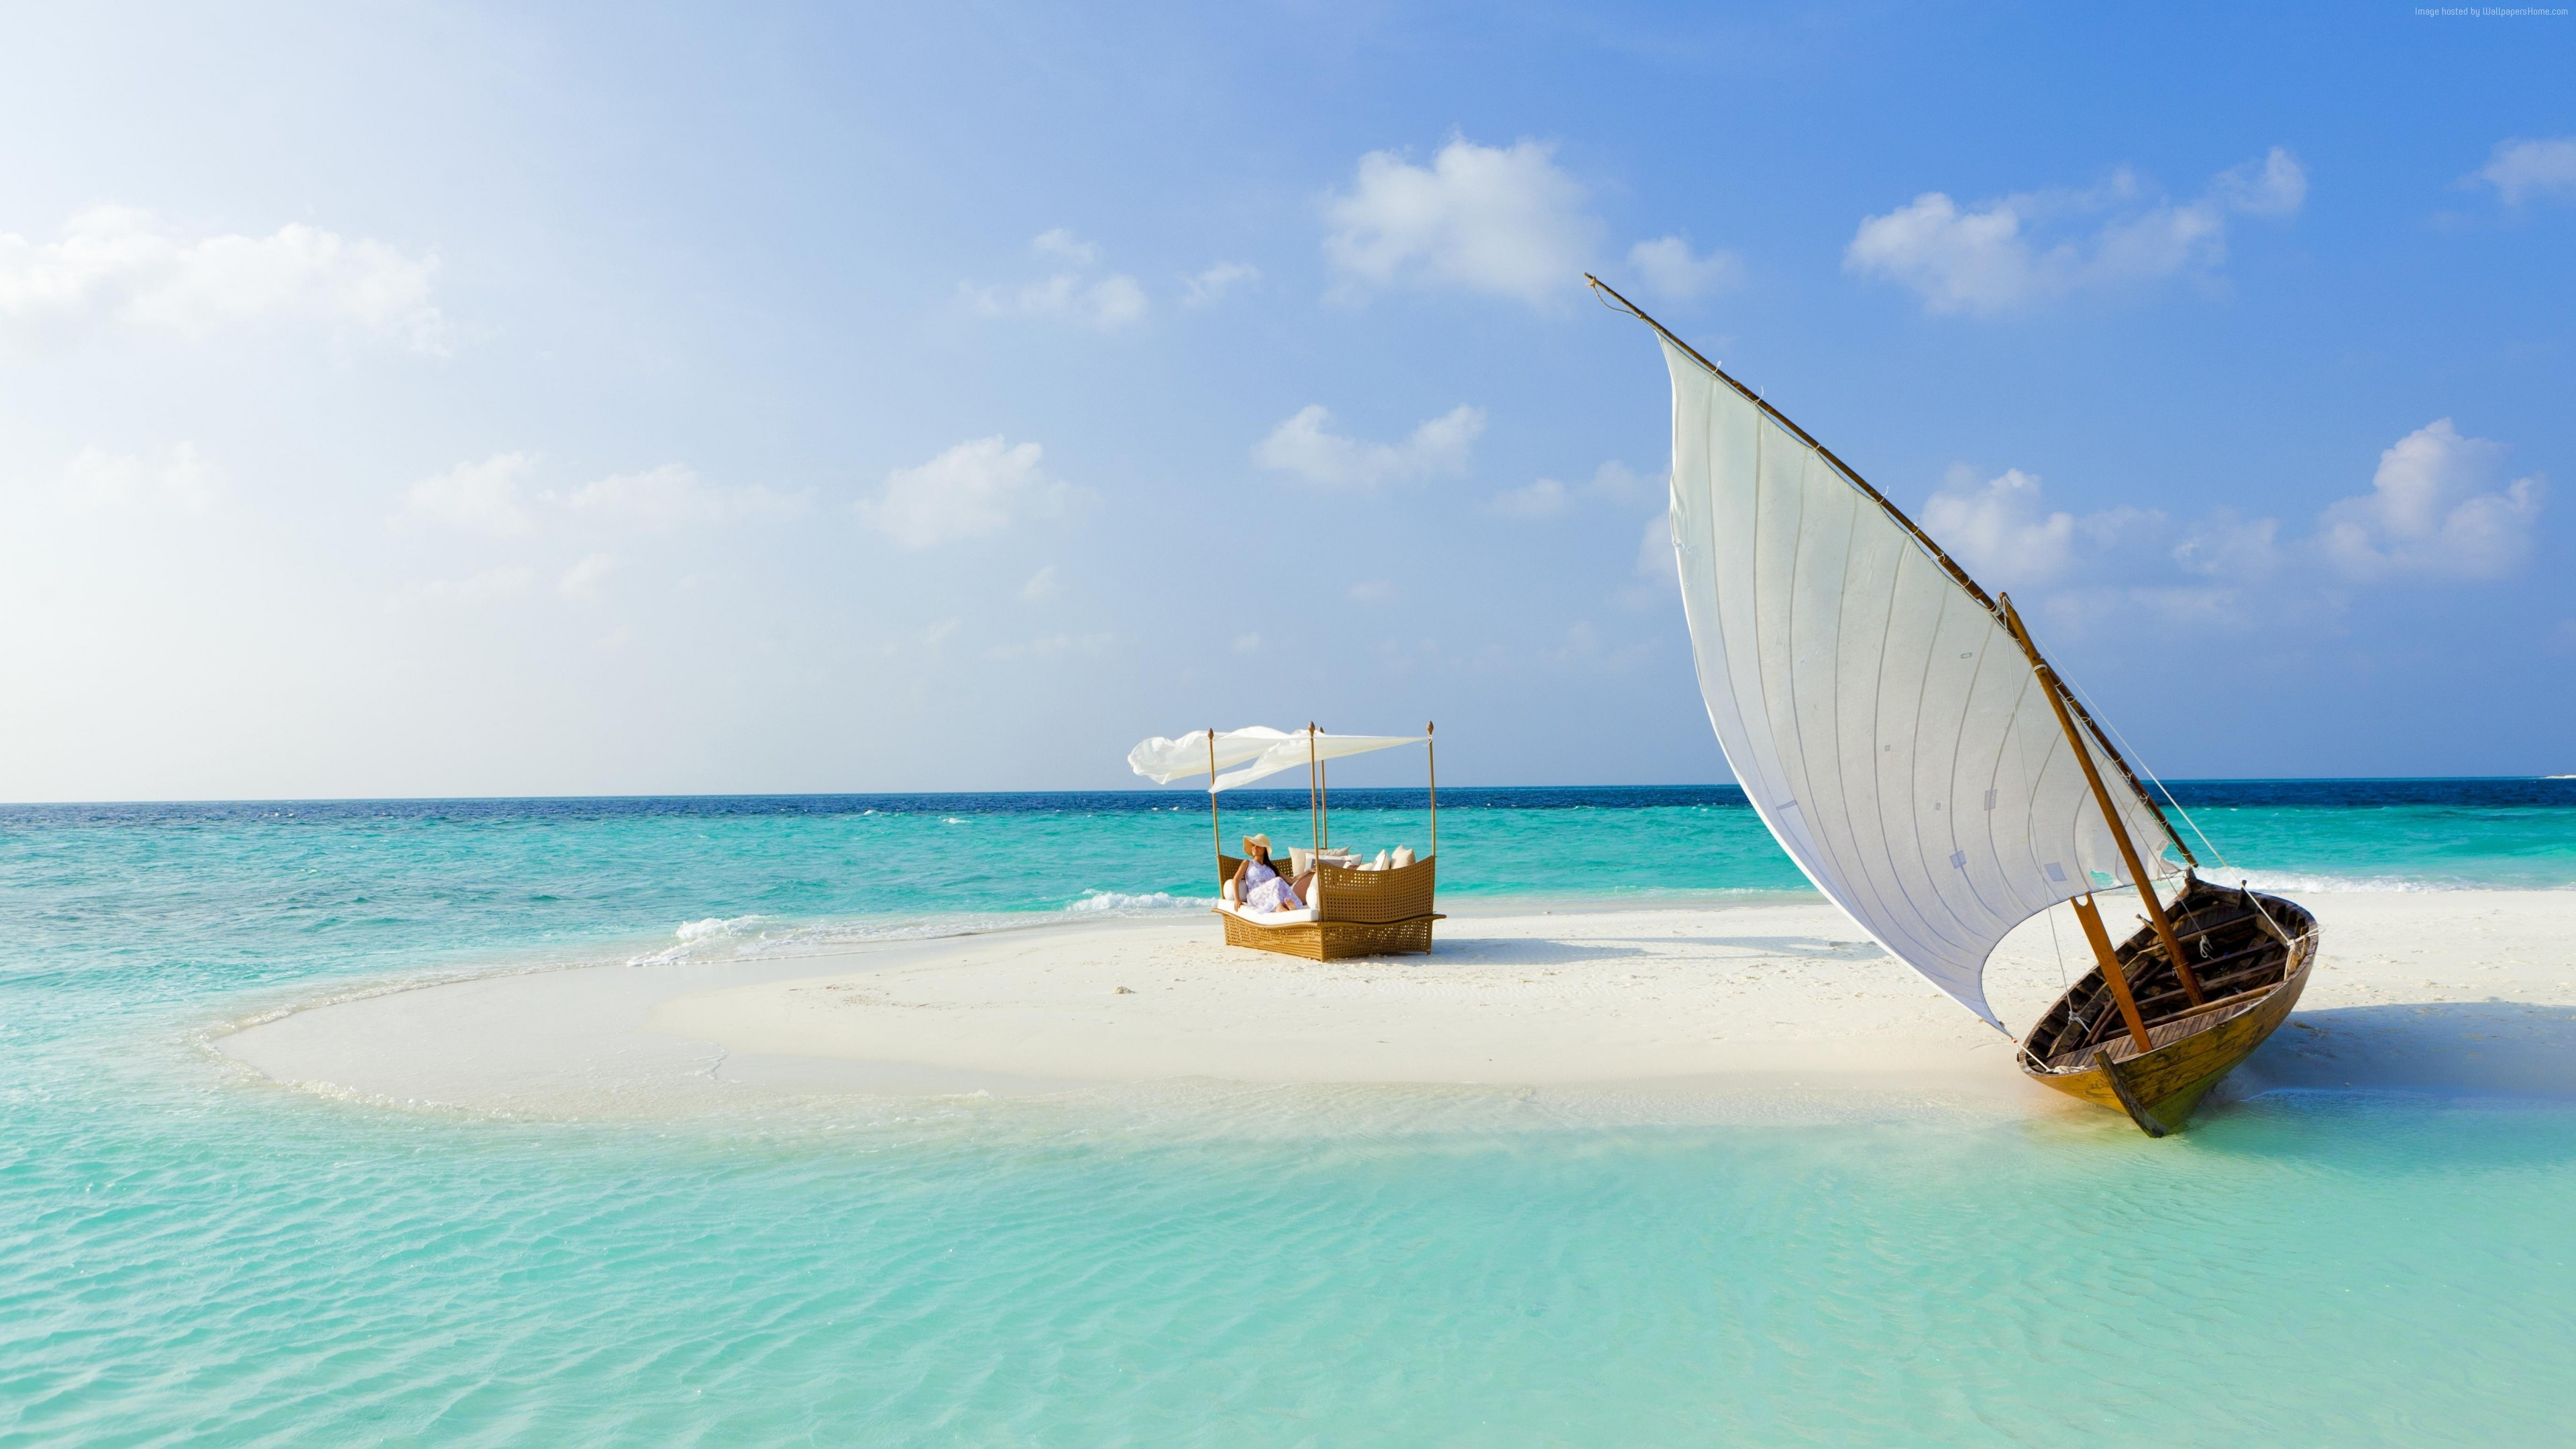 baros-maldives-3840x2160-male-attols-best-hotels-of-2015-best-beaches-3131